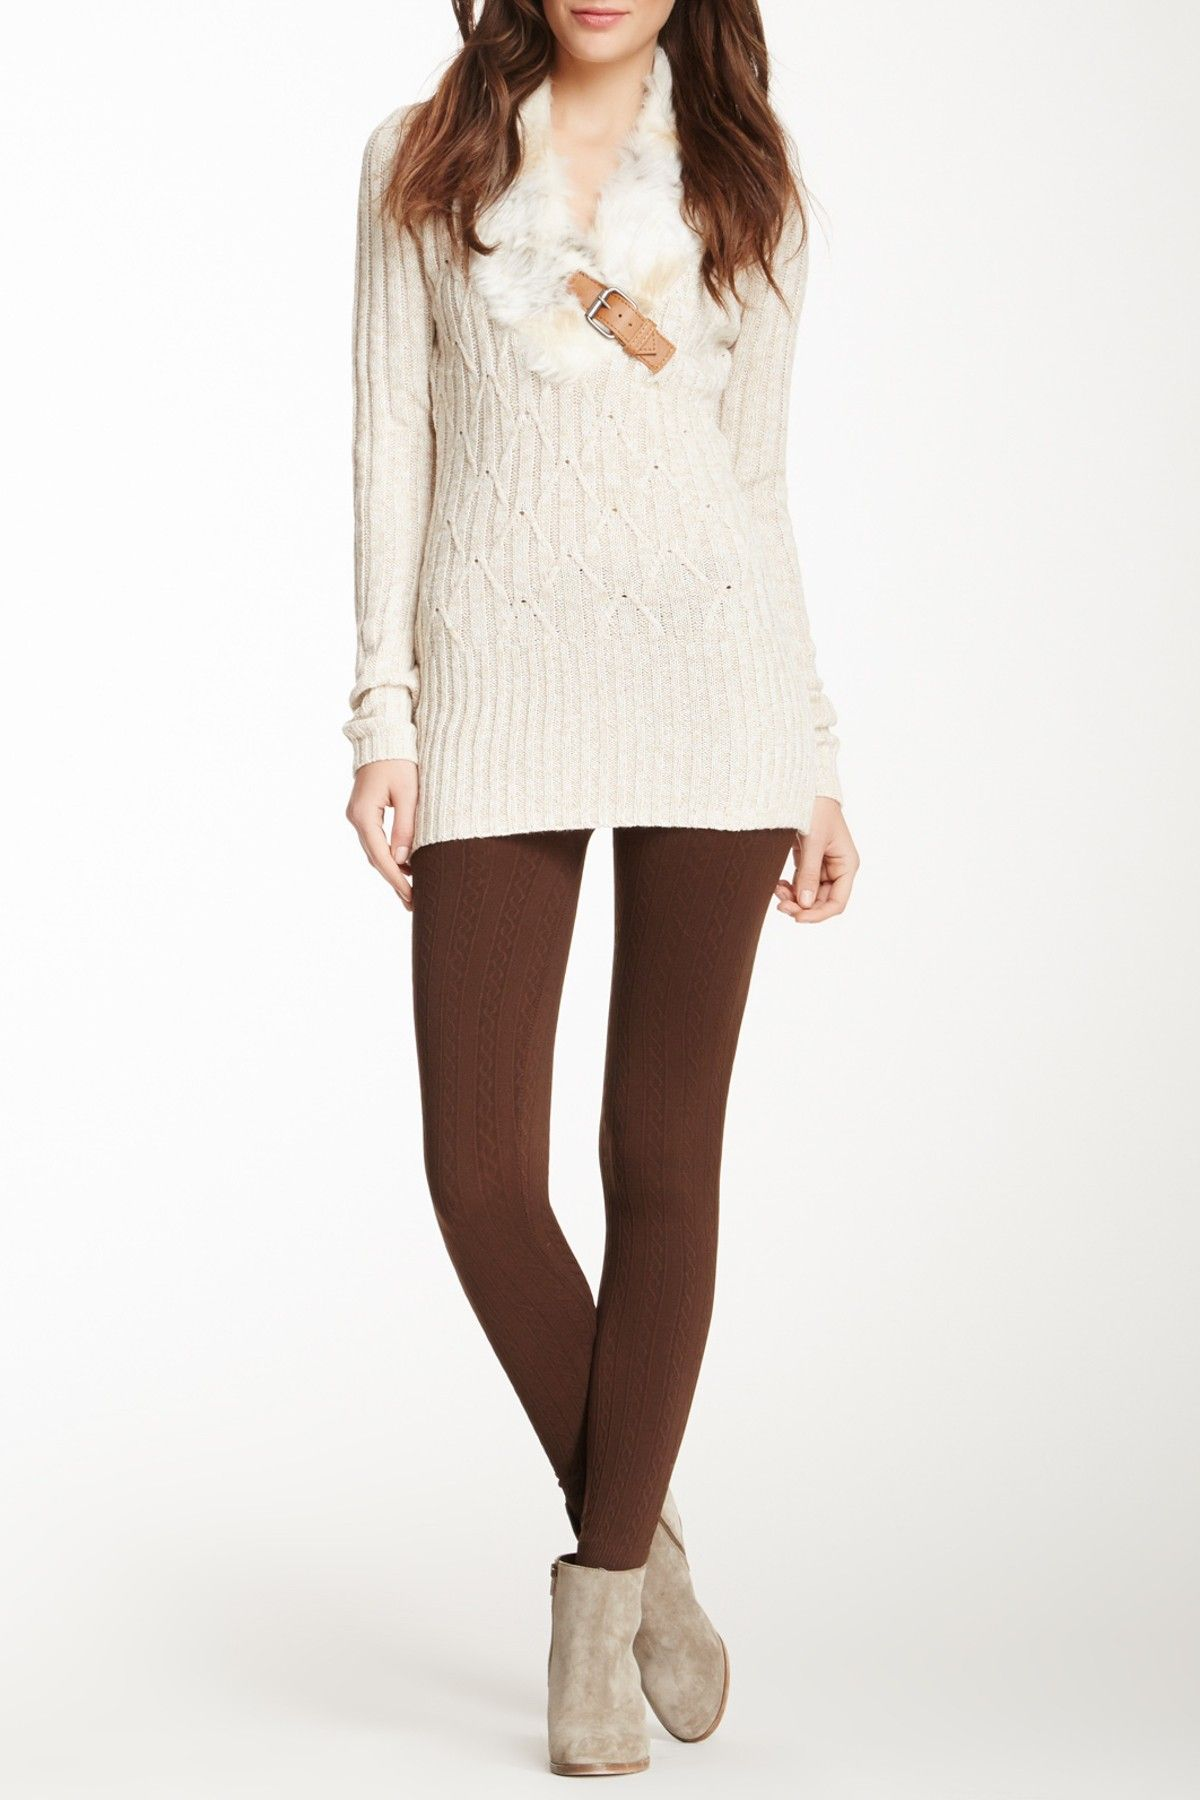 Seamless Cable Knit Sweater Legging By Papillon On Hautelook